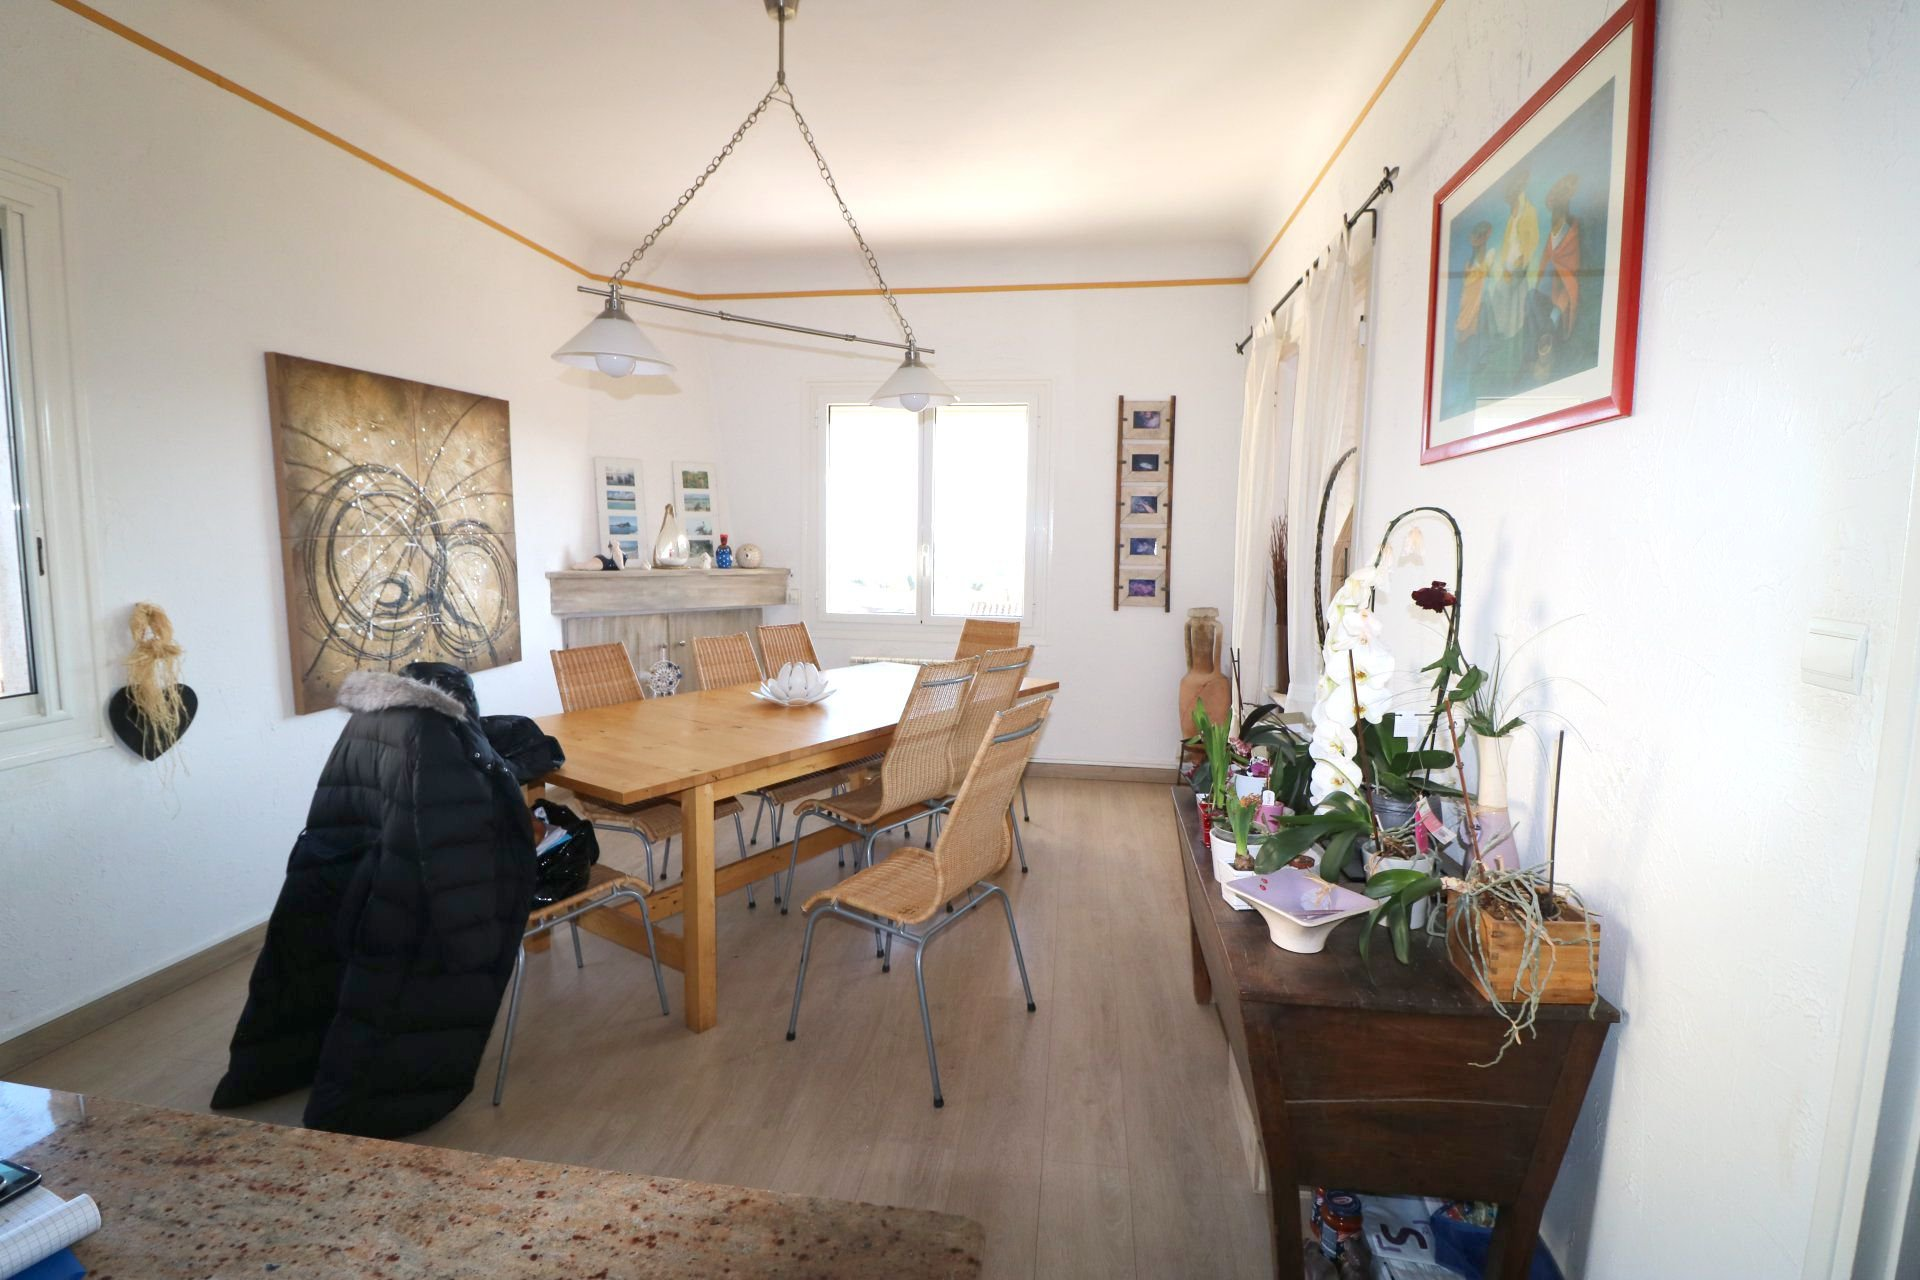 Sale Apartment villa - La Colle-sur-Loup